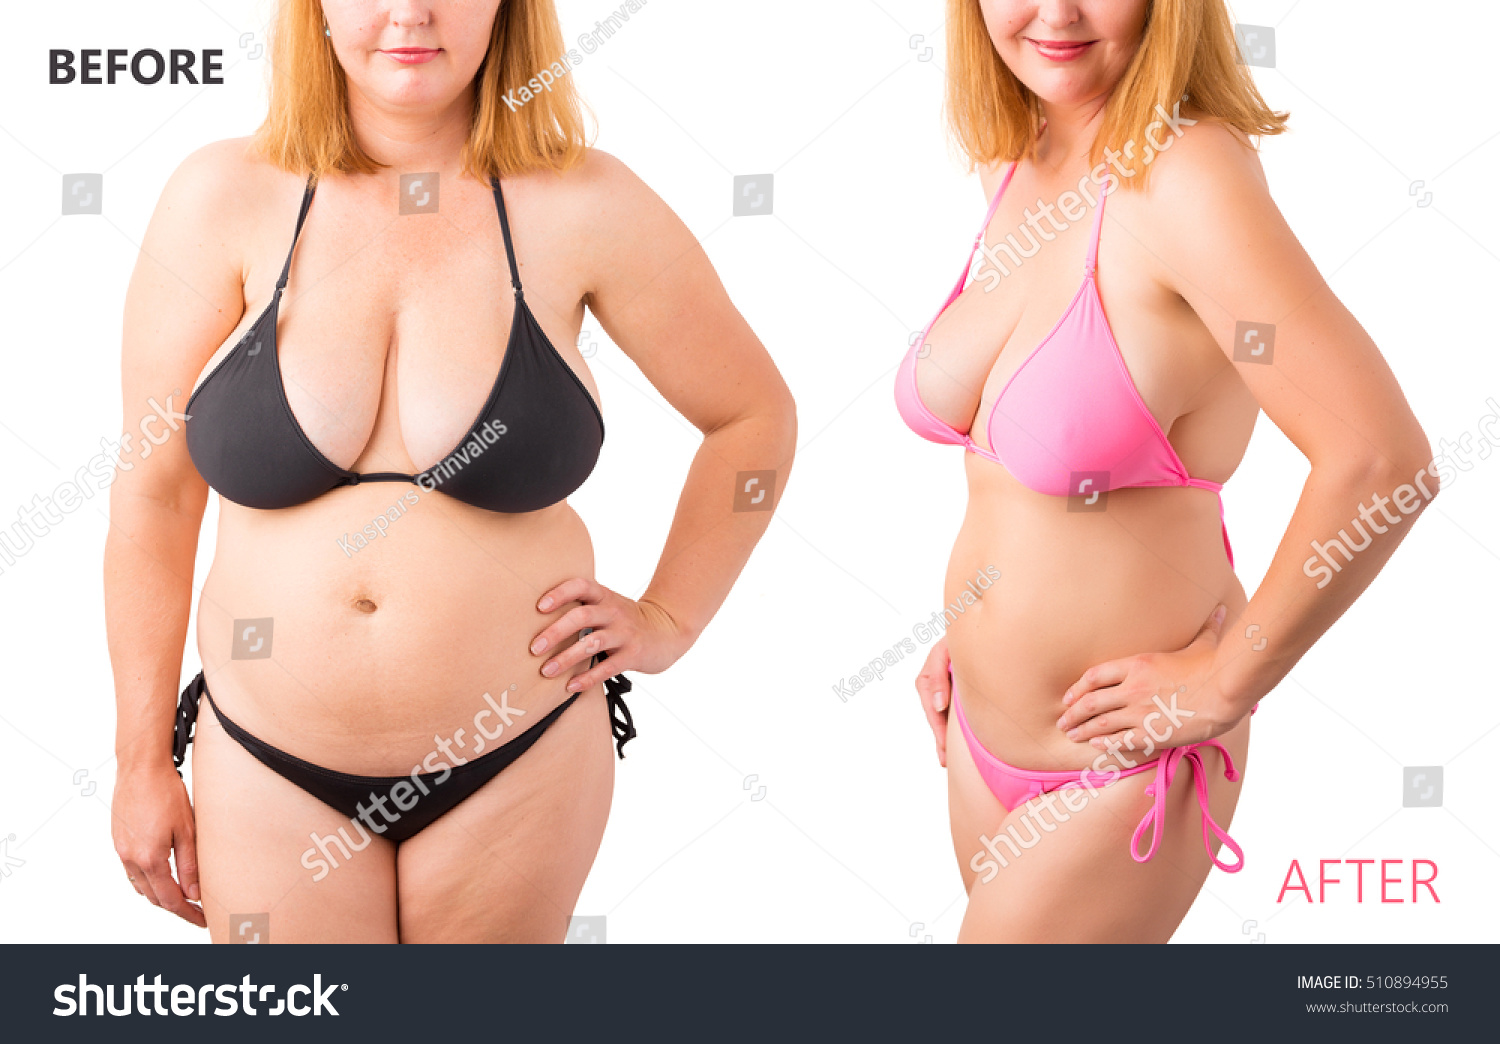 before and after weight loss bikini